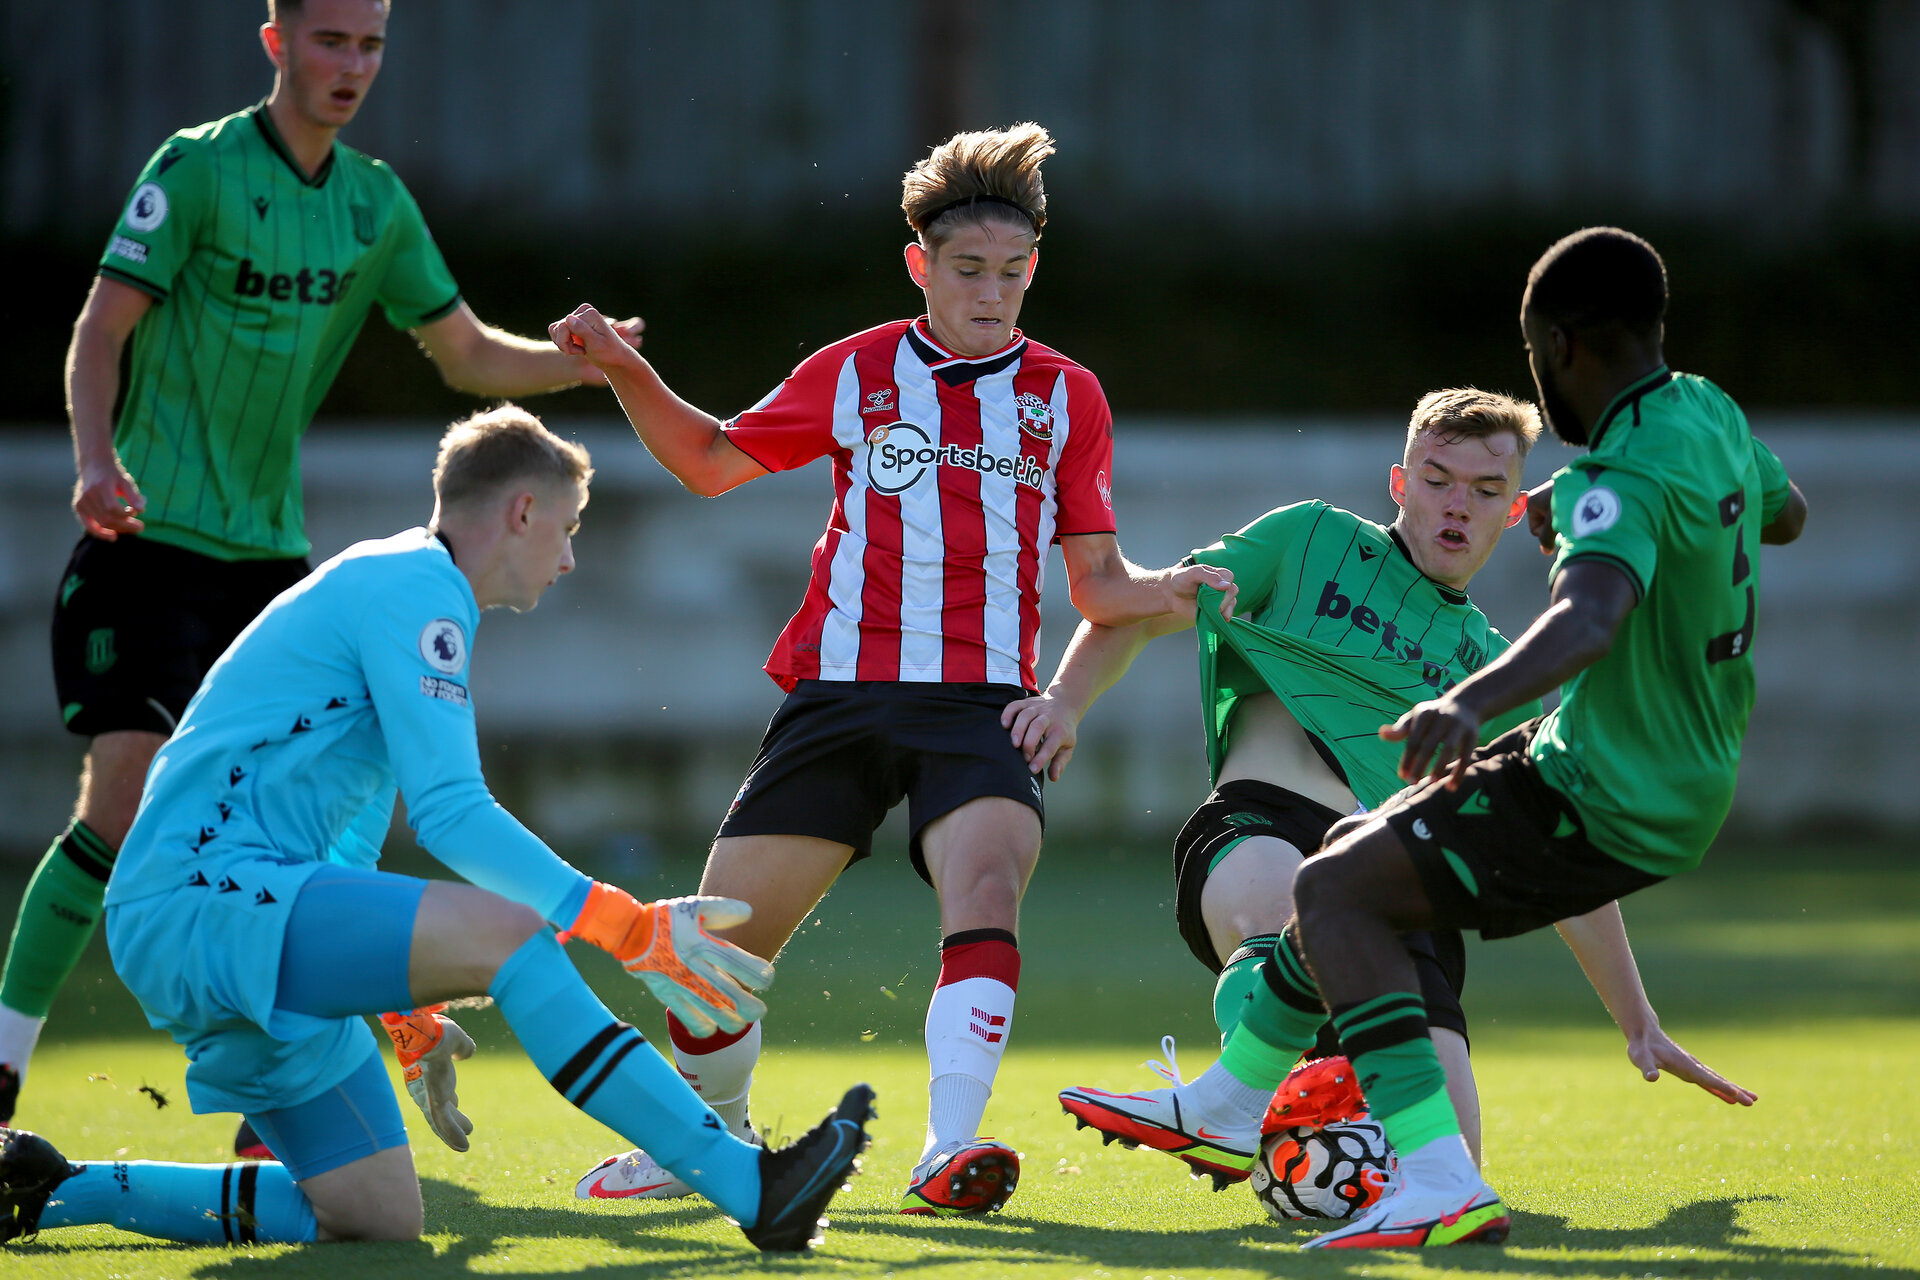 SOUTHAMPTON, ENGLAND - OCTOBER 01:  during the Premier League 2 match between Southampton B Team and Stoke City at Staplewood Training Ground on October 01, 2021 in Southampton, England. (Photo by Isabelle Field/Southampton FC via Getty Images)